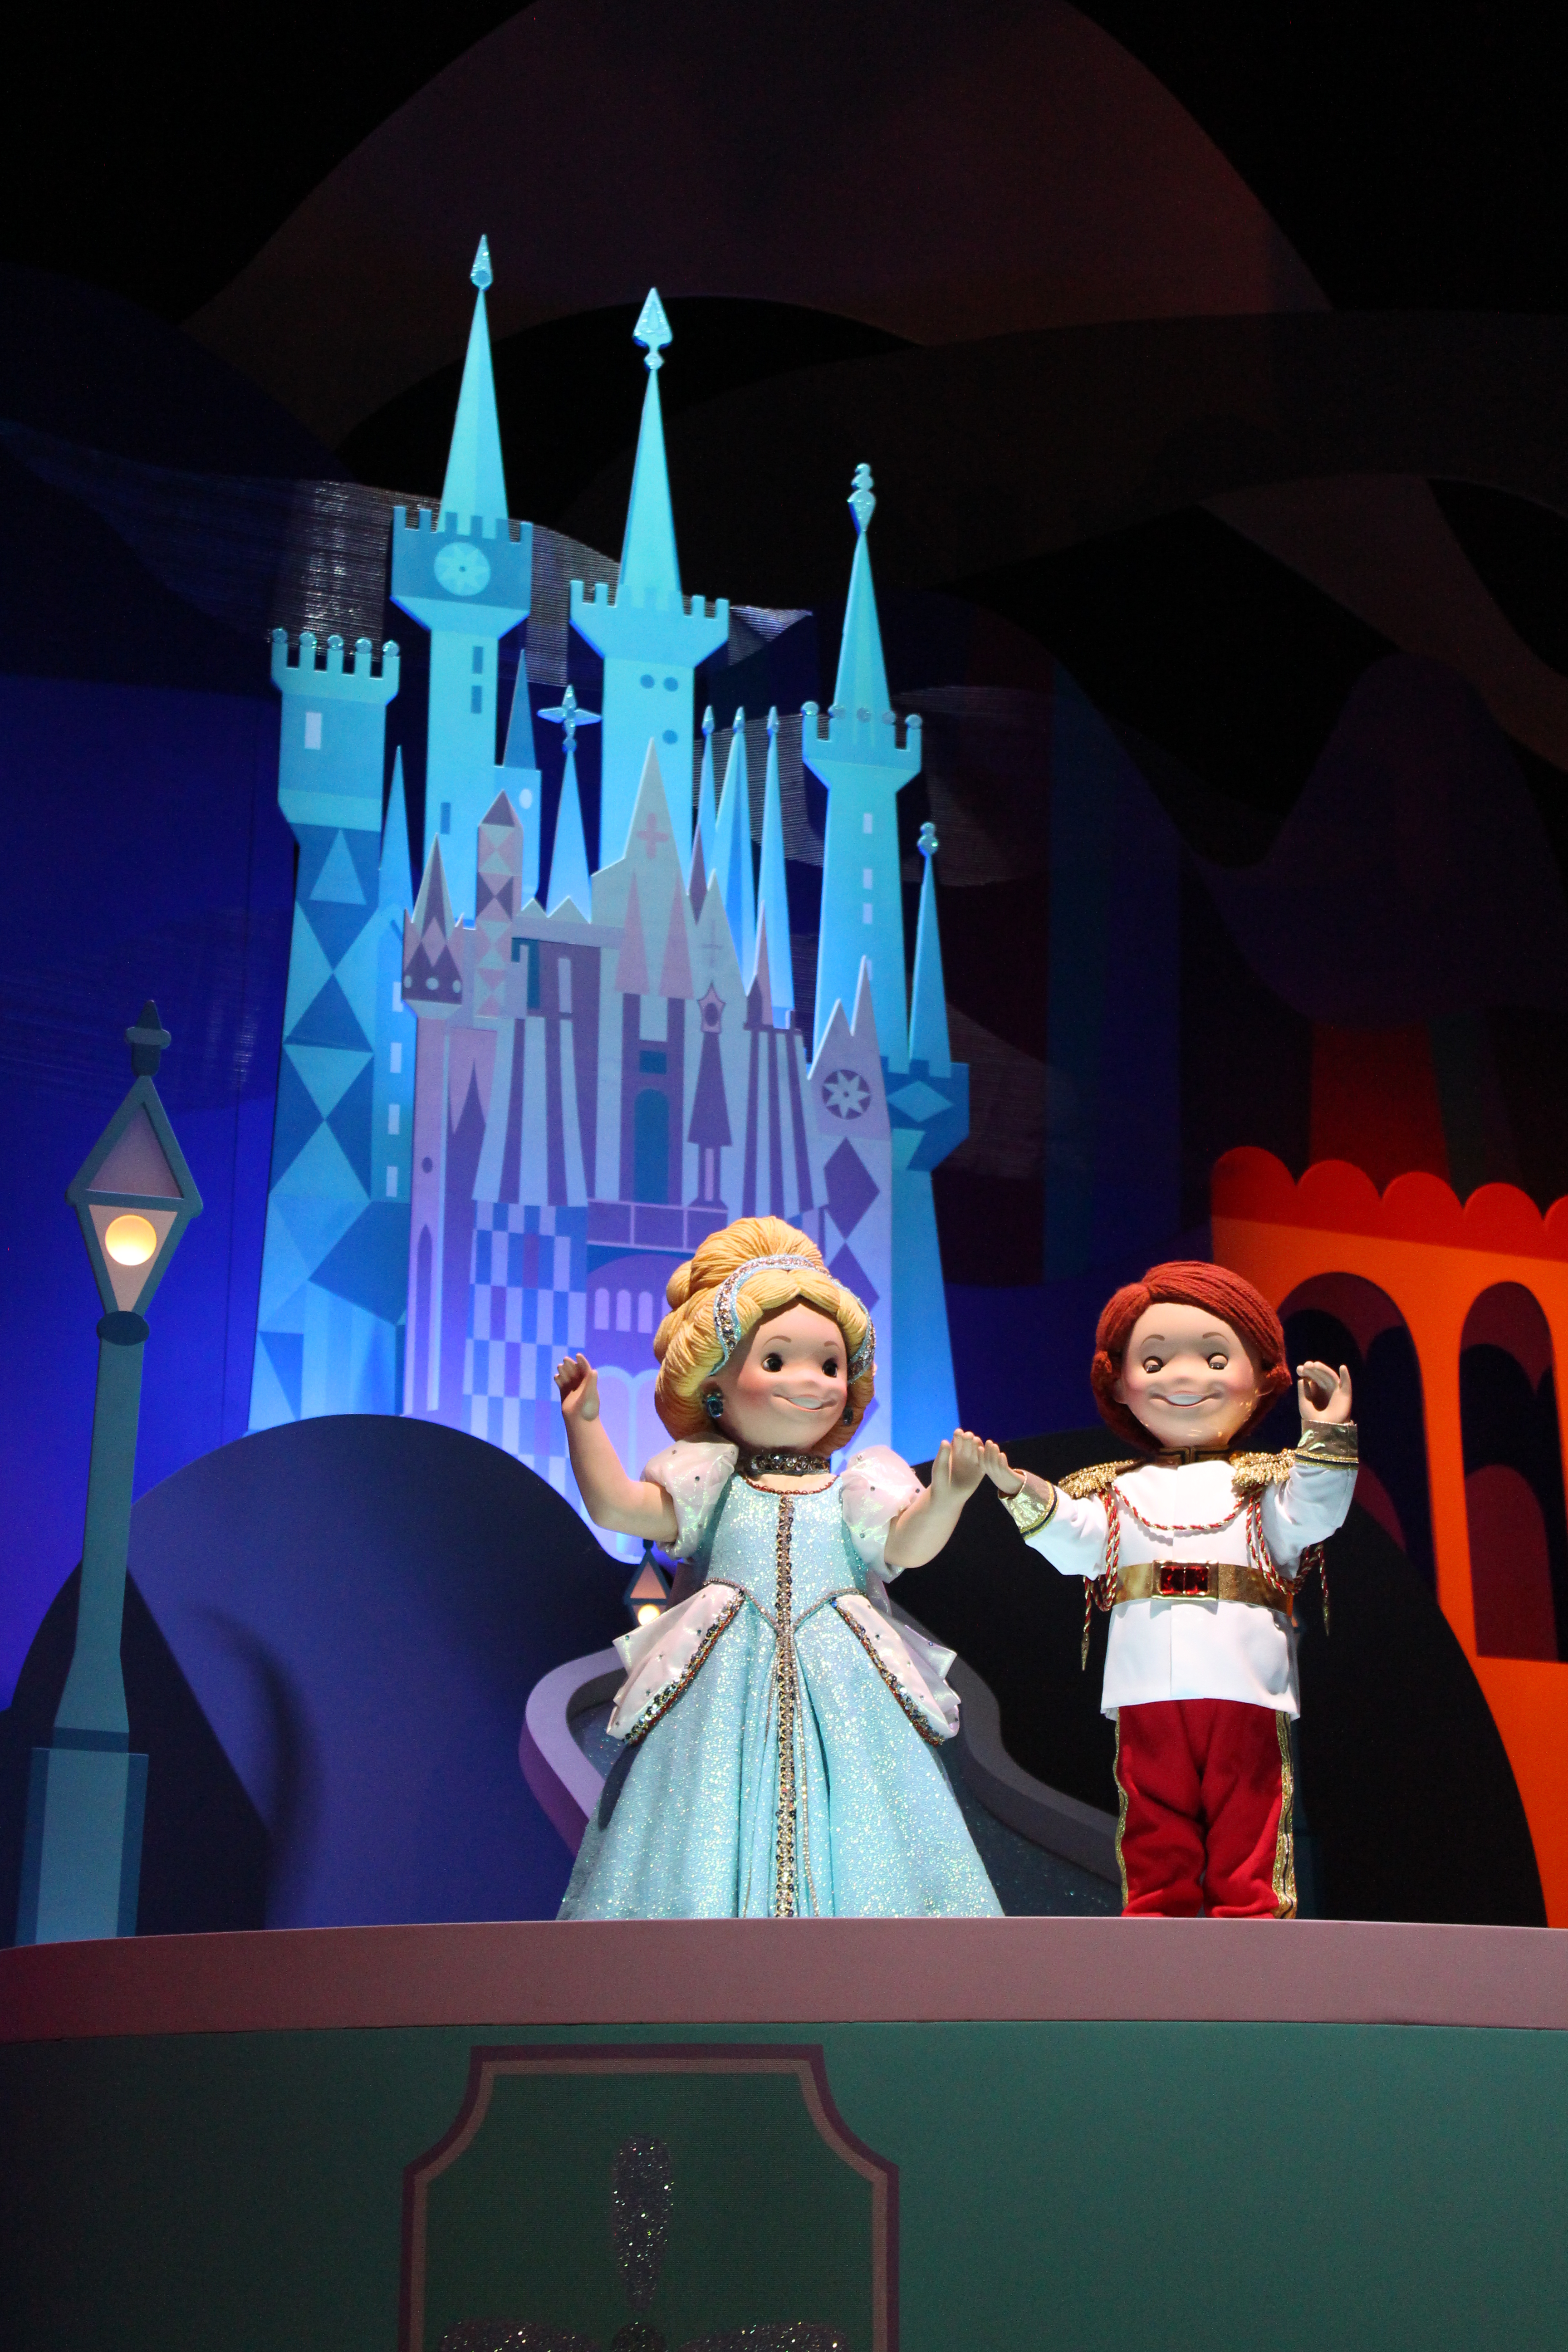 File Hk Disneyland Hotel Room 陽台 Balcony Glass Door 椅子: It's A Small World IMG 5422